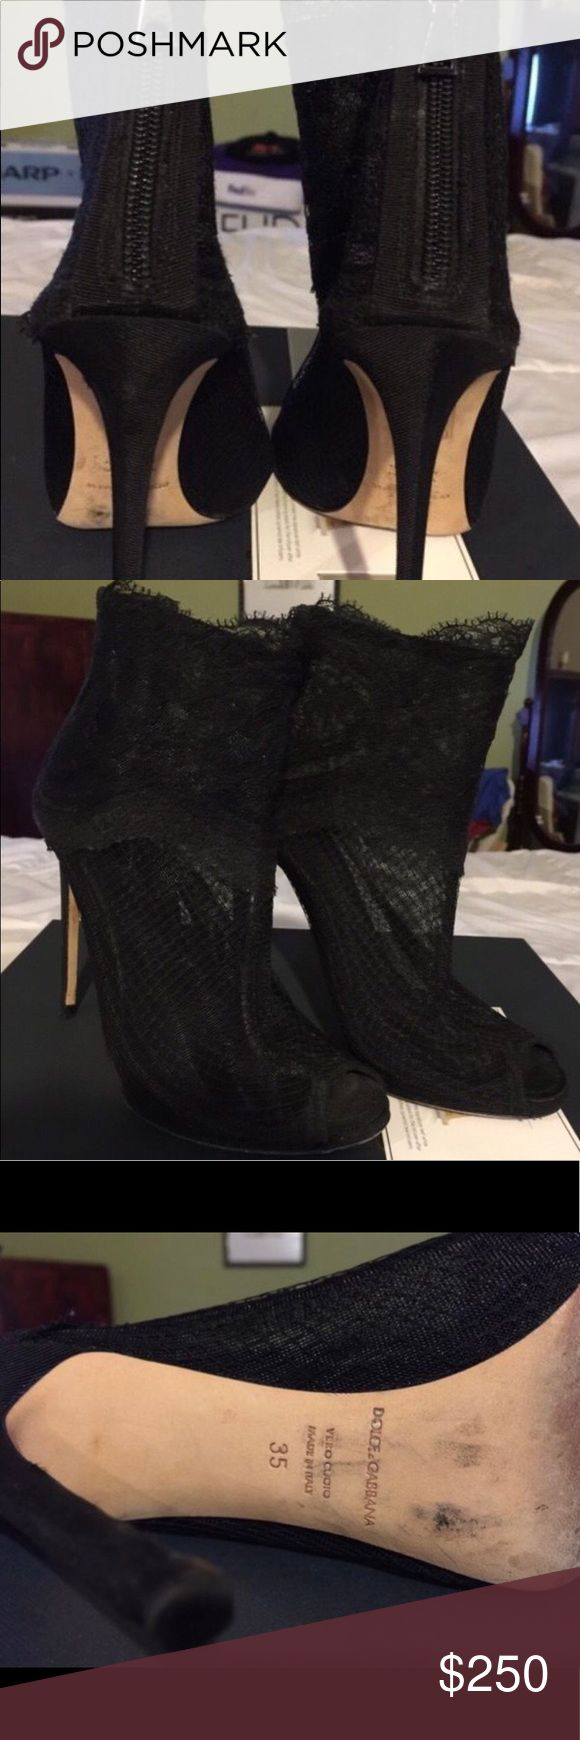 Dolce & Gabana Black Lace Booties Dolce & Gabana Authentic Black lace ankle boots in very good condition.  No box and size 35 European and 5 US Dolce & Gabbana Shoes Ankle Boots & Booties